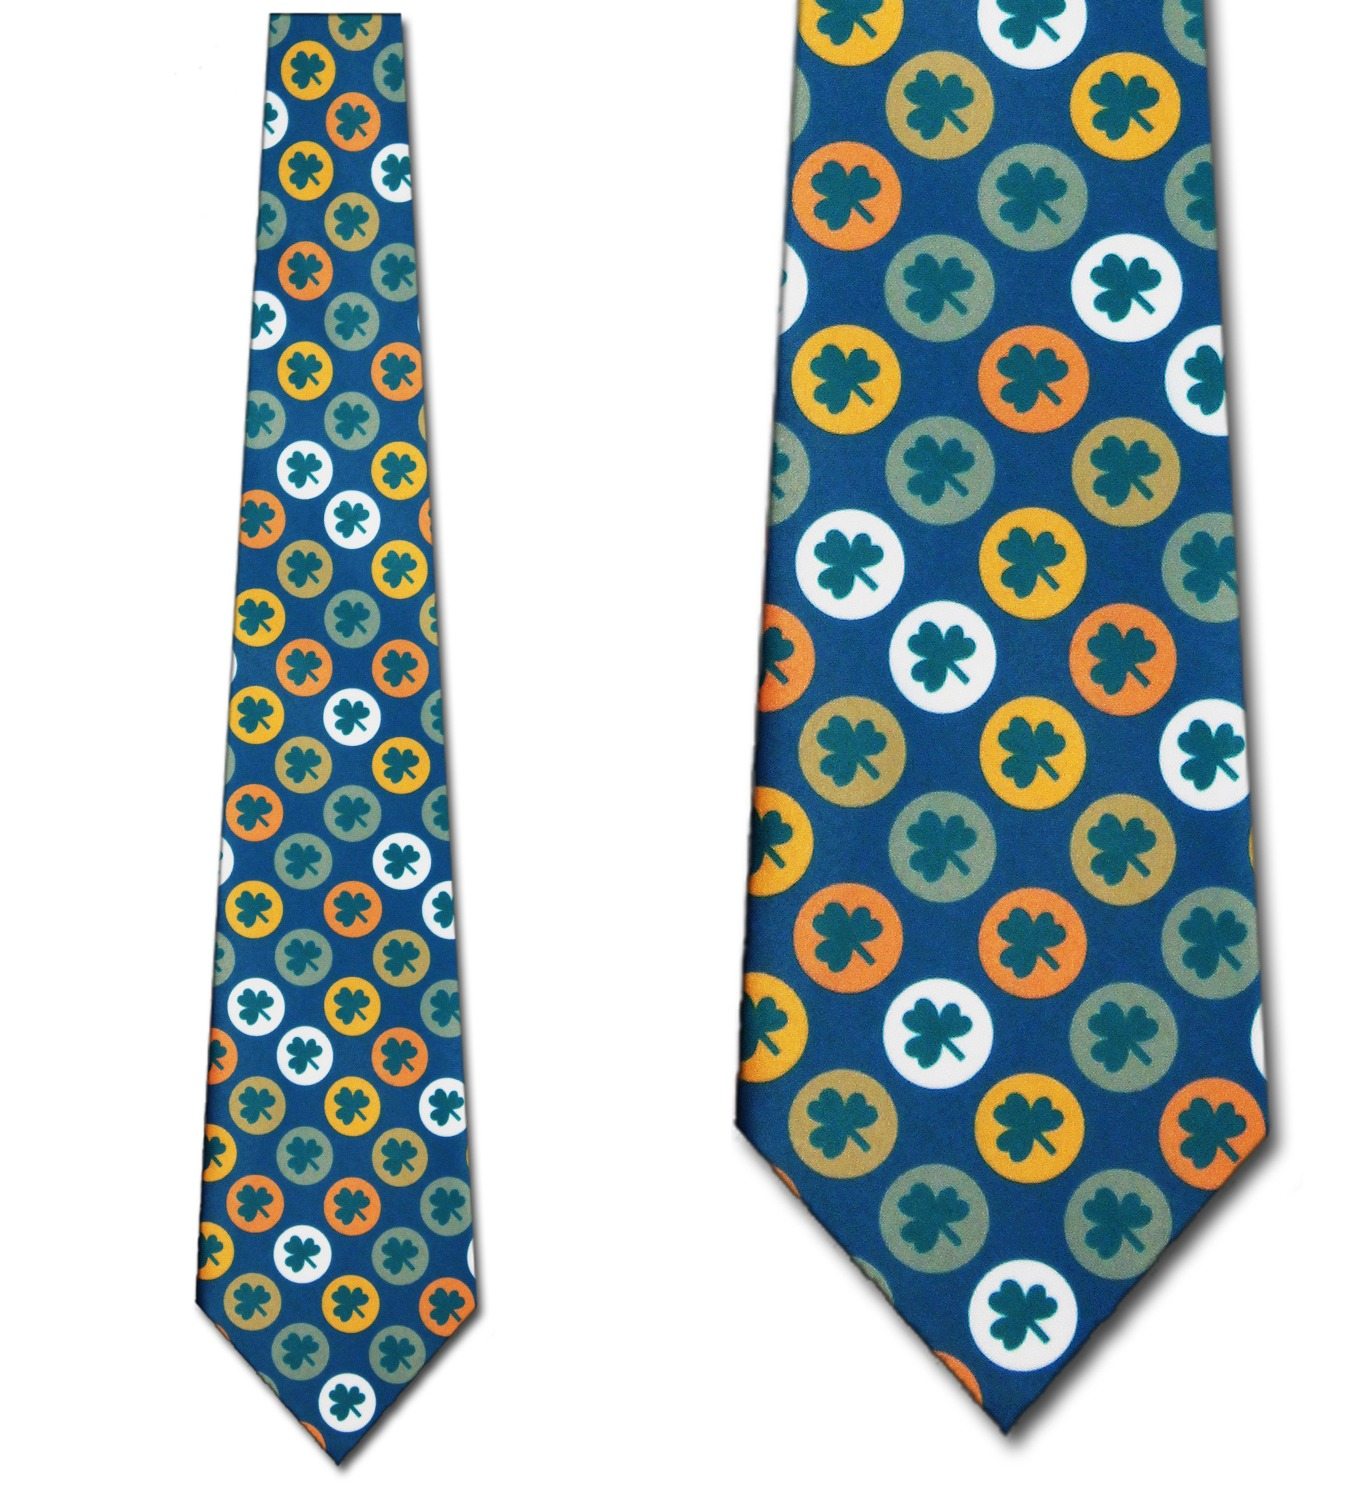 Clover Circles Allover Necktie Mens Tie